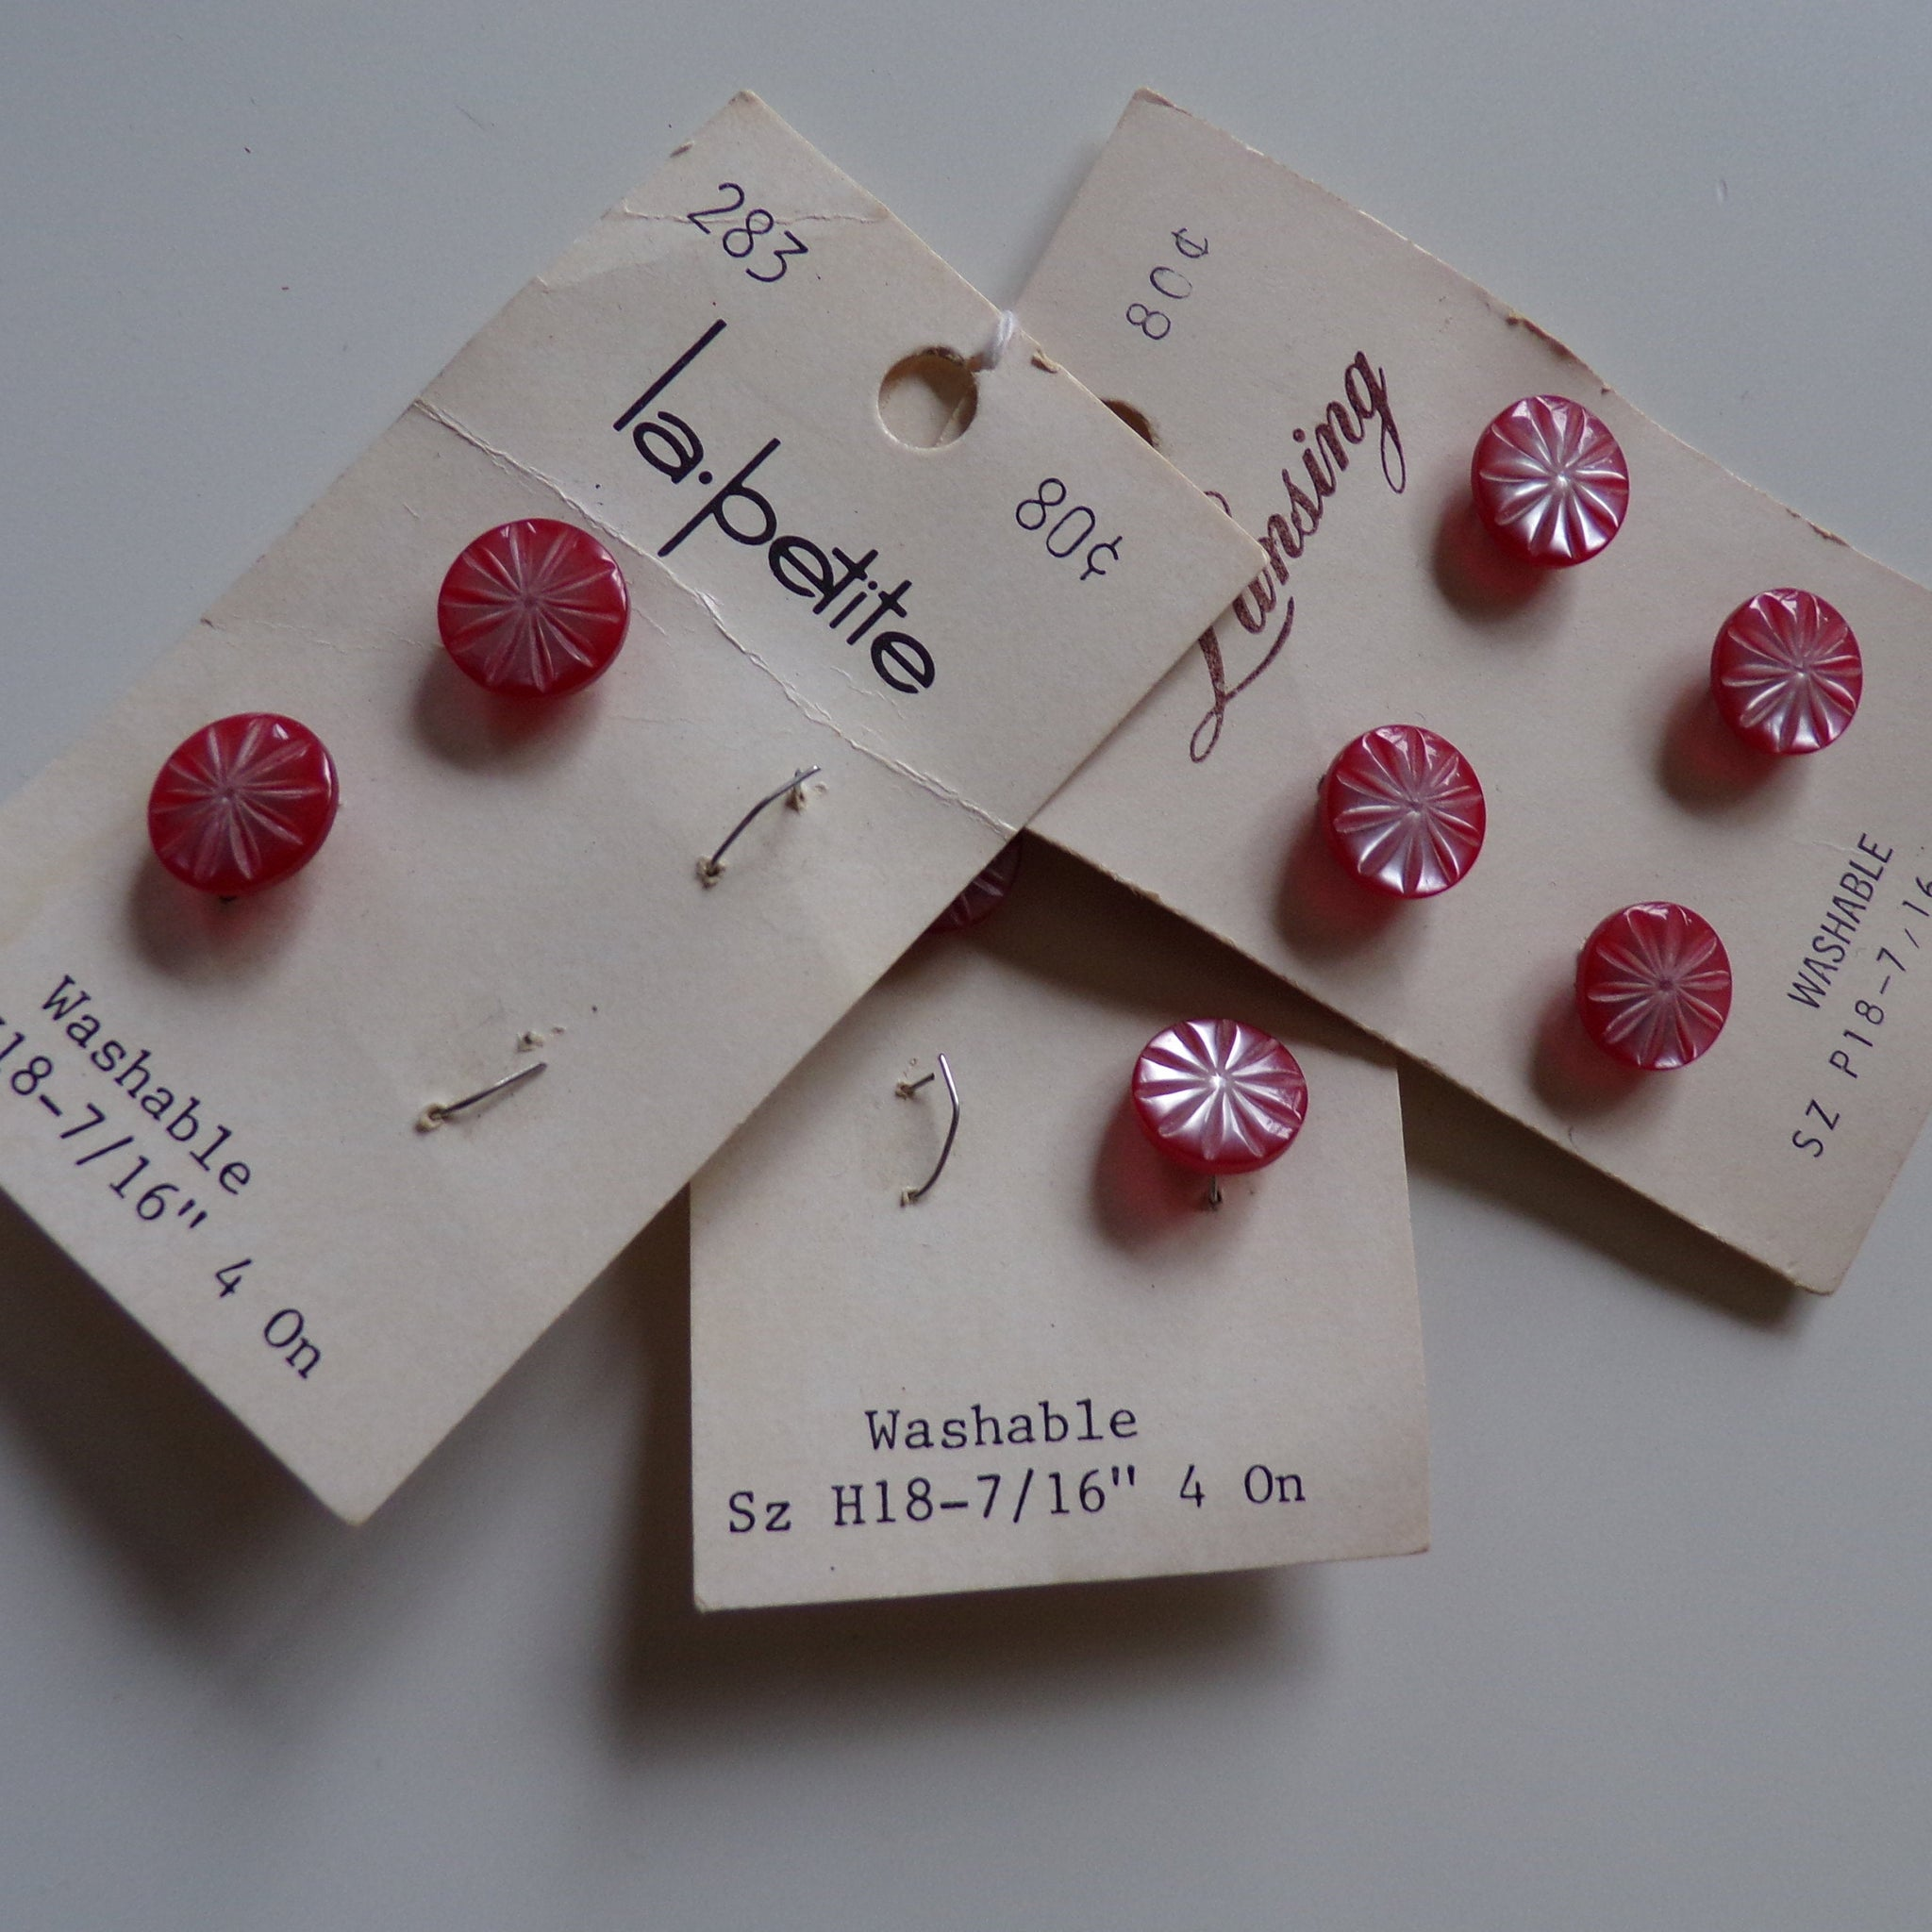 lot of 9 LA PETITE BUTTONS on cards 1950's 1960's starburst pink